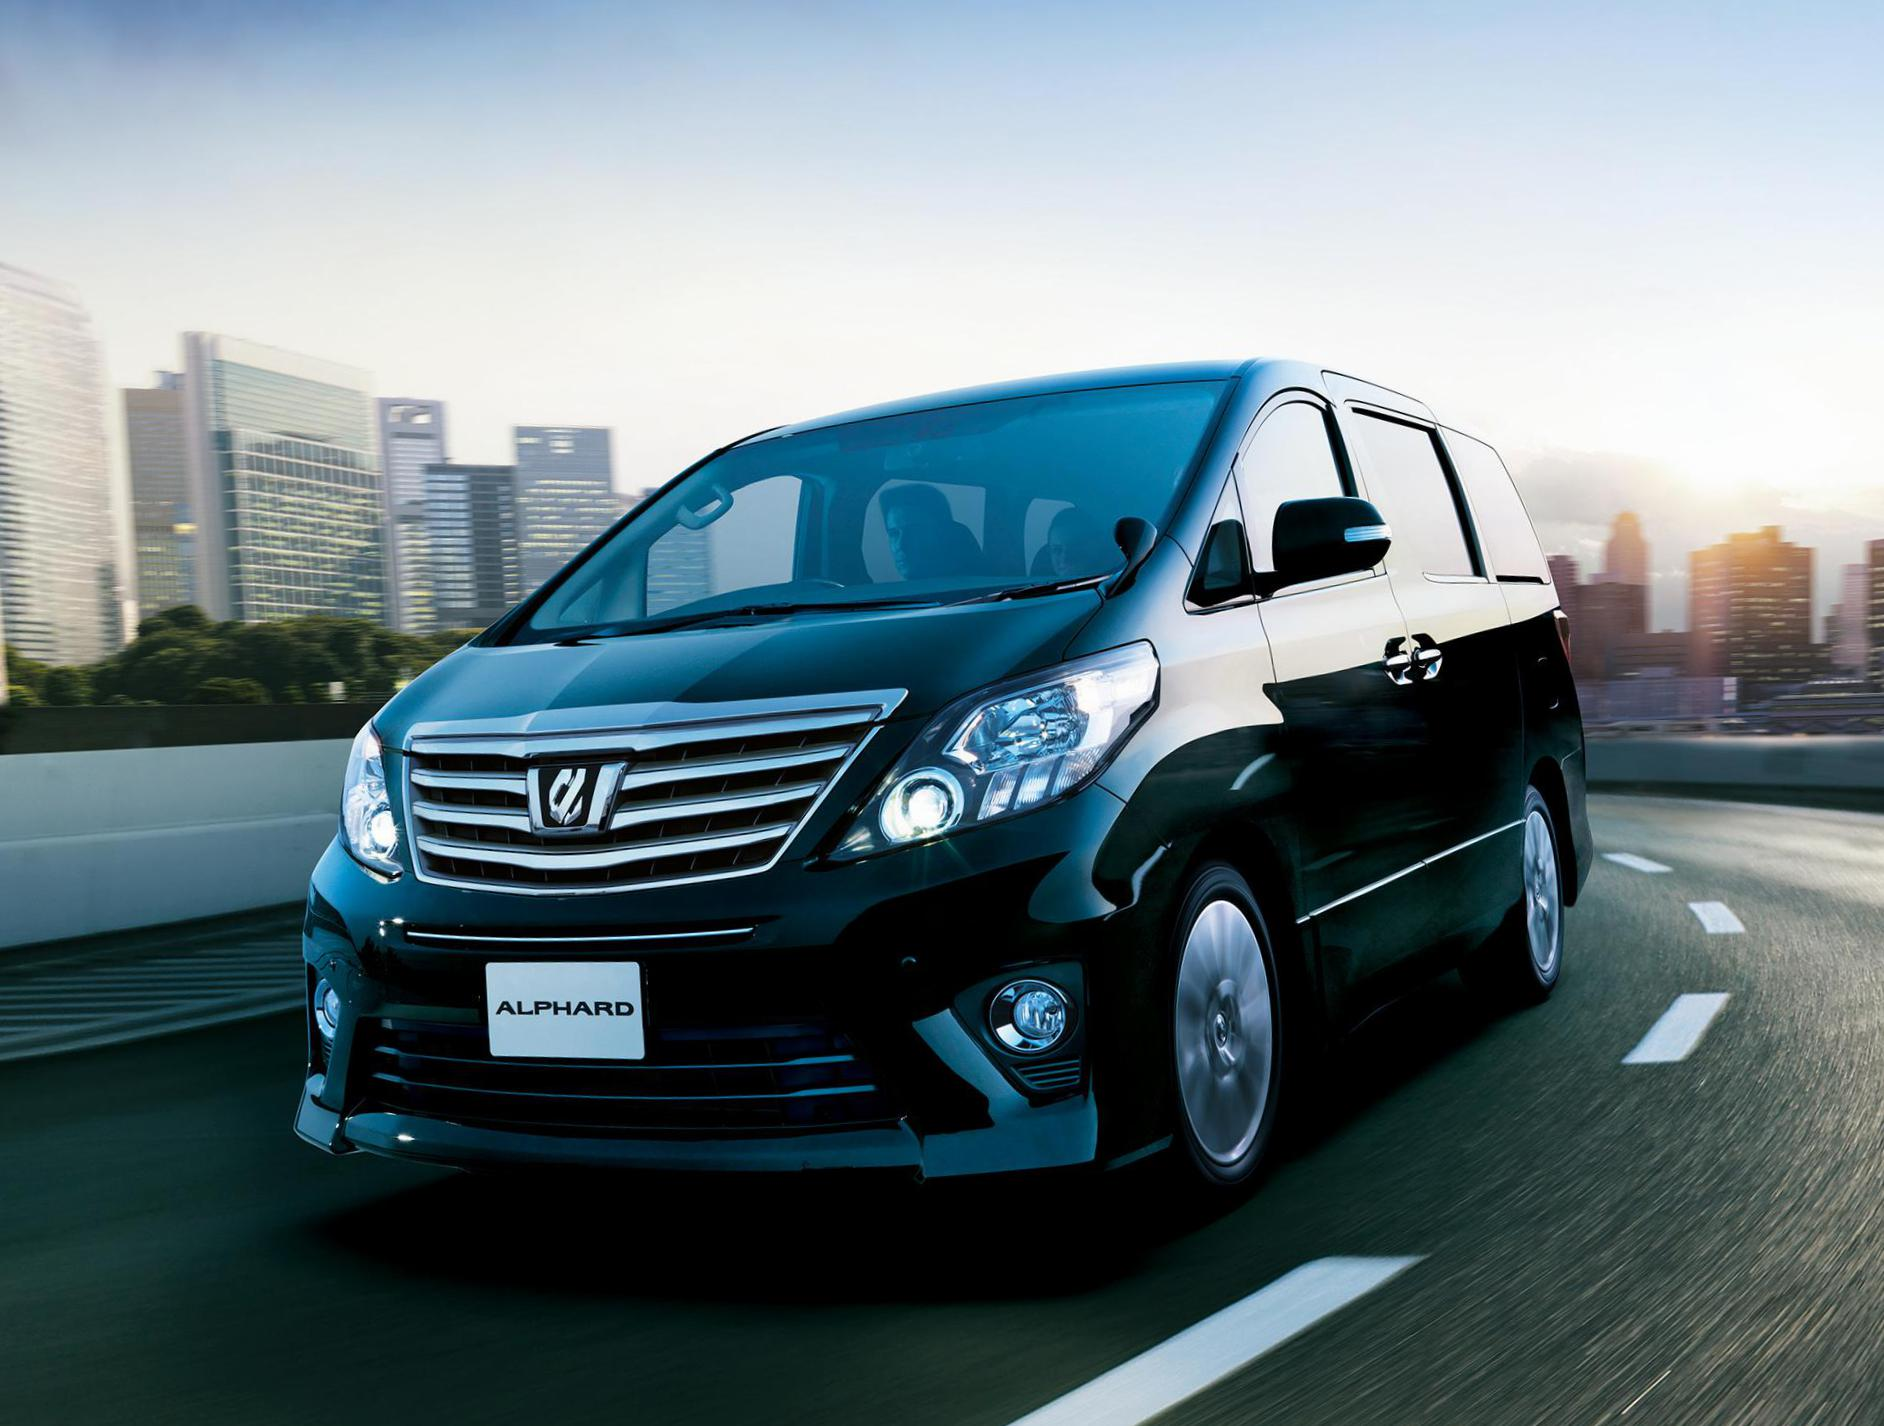 Toyota Alphard how mach coupe